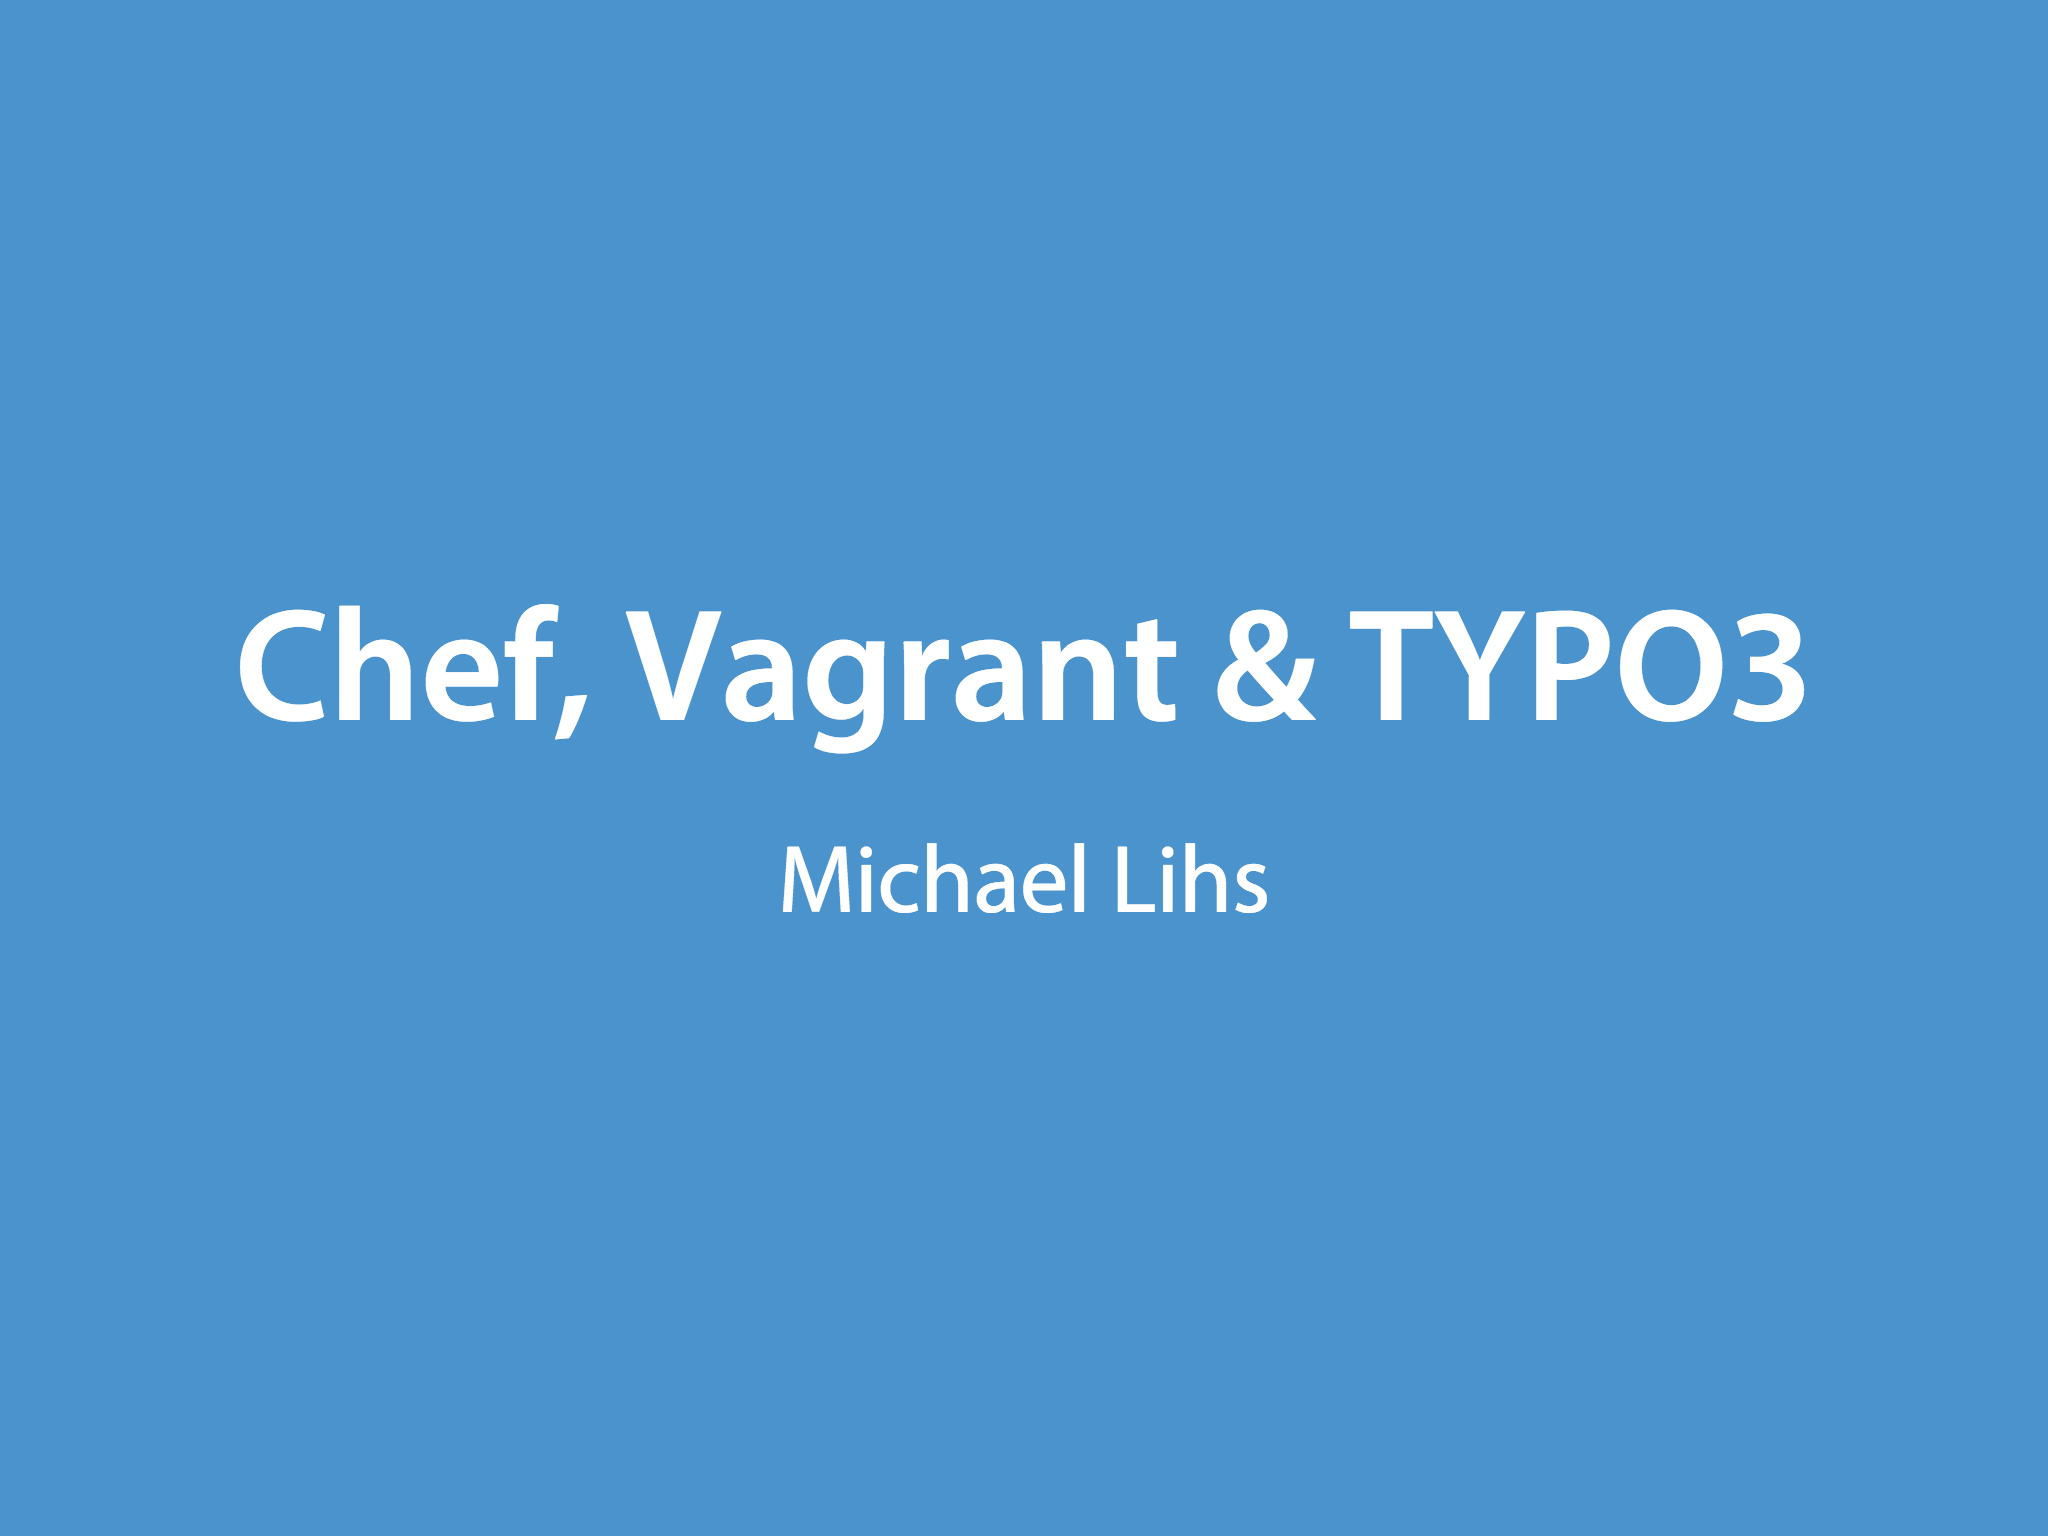 Slides for Chef, Vagrant and TYPO3